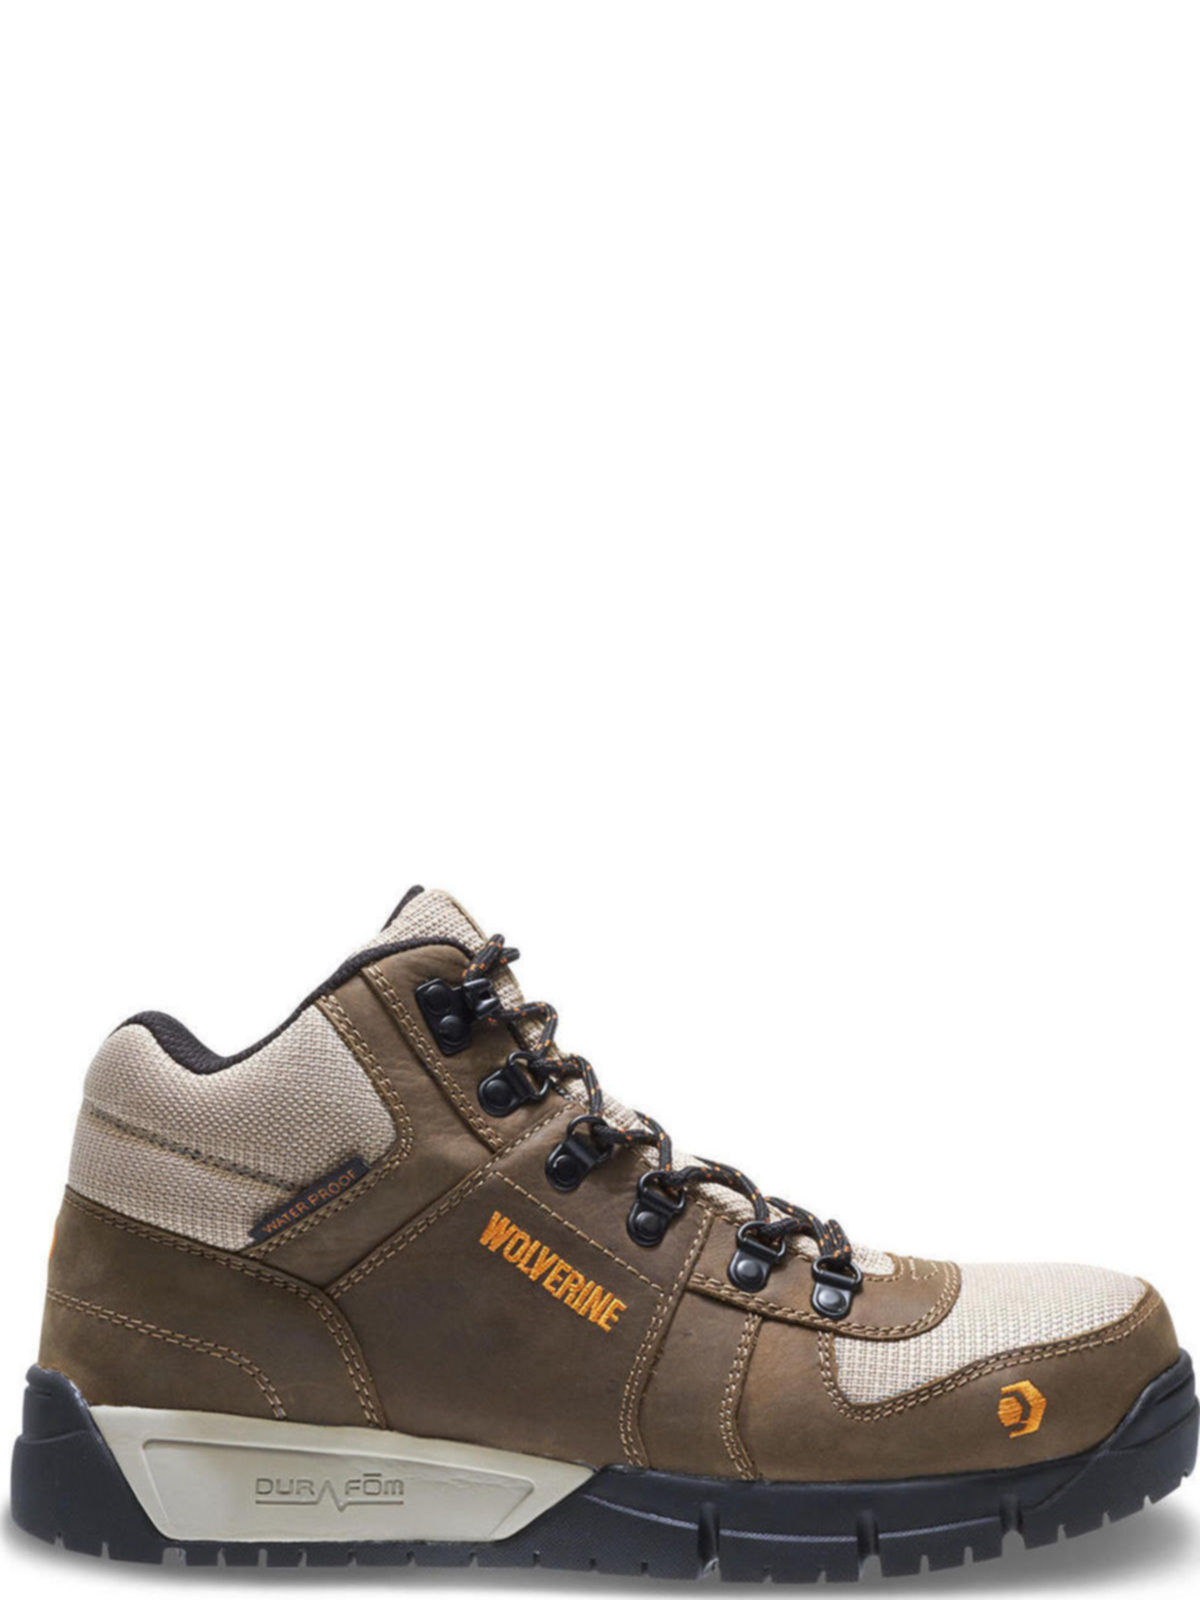 15fd88ea624 Wolverine Mens Mauler Hiker CarbonMax Tan Work Boots W10726